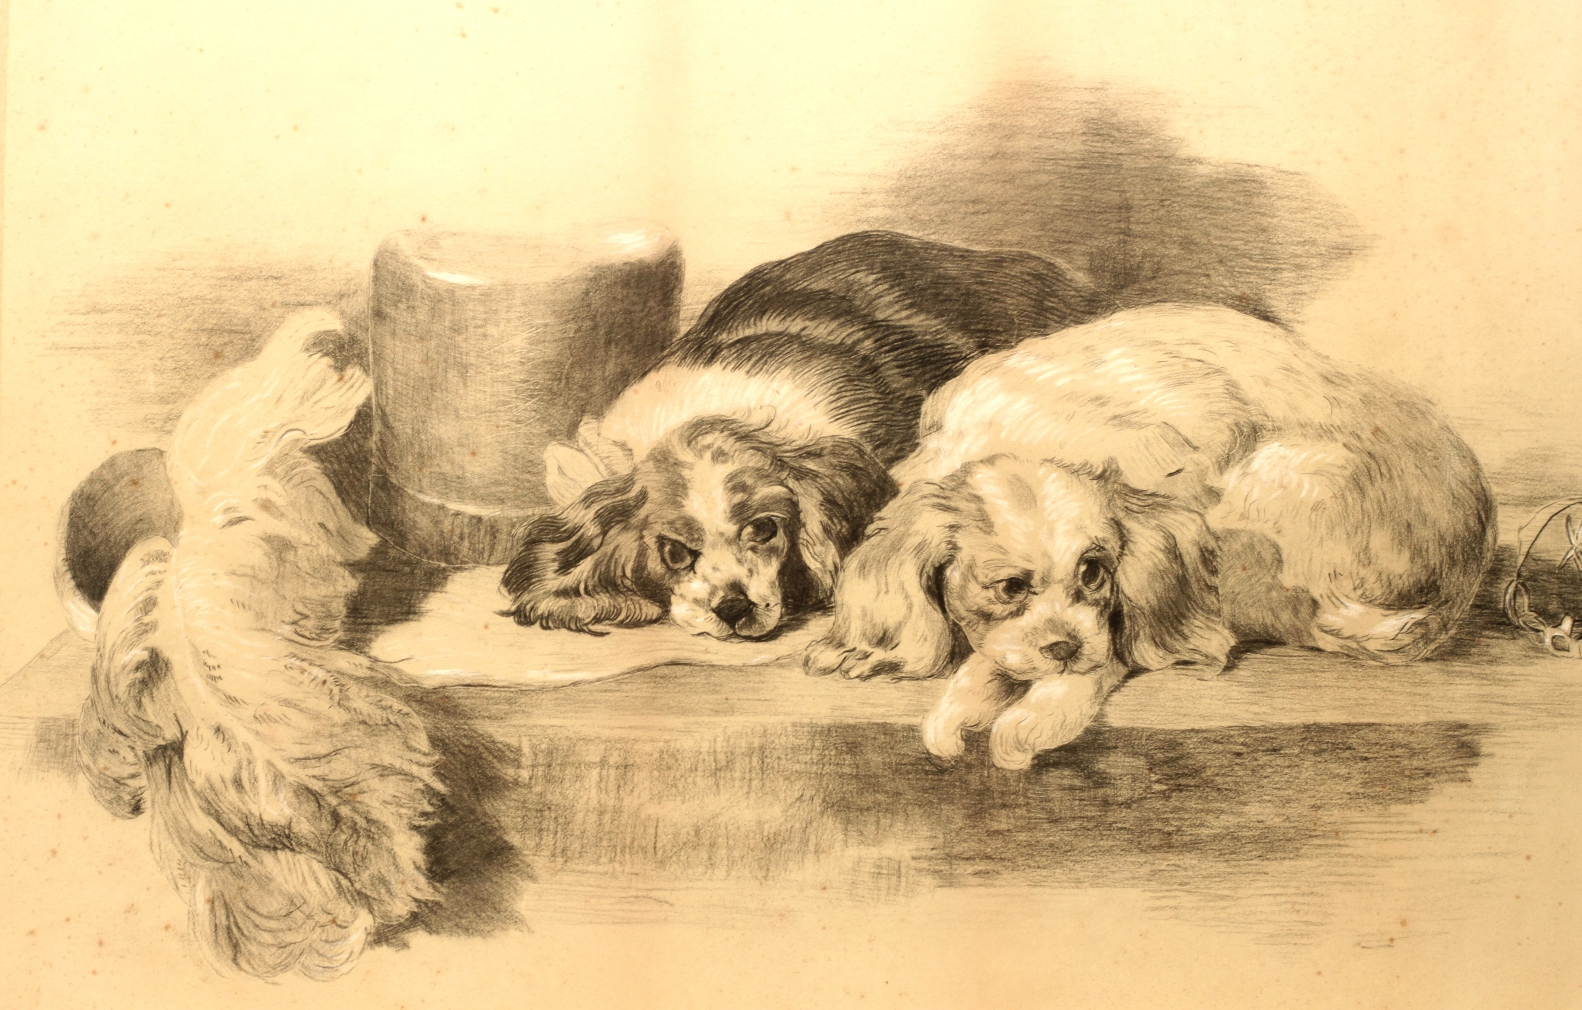 Click to see full size: A 19th century English pencil drawing of the ?Cavalier?s Pets? after Sir Edwin Landseer RA (1802-1873).- A 19th century English pencil drawing of the ?Cavalier?s Pets? after Sir Edwin Landseer RA (1802-1873).